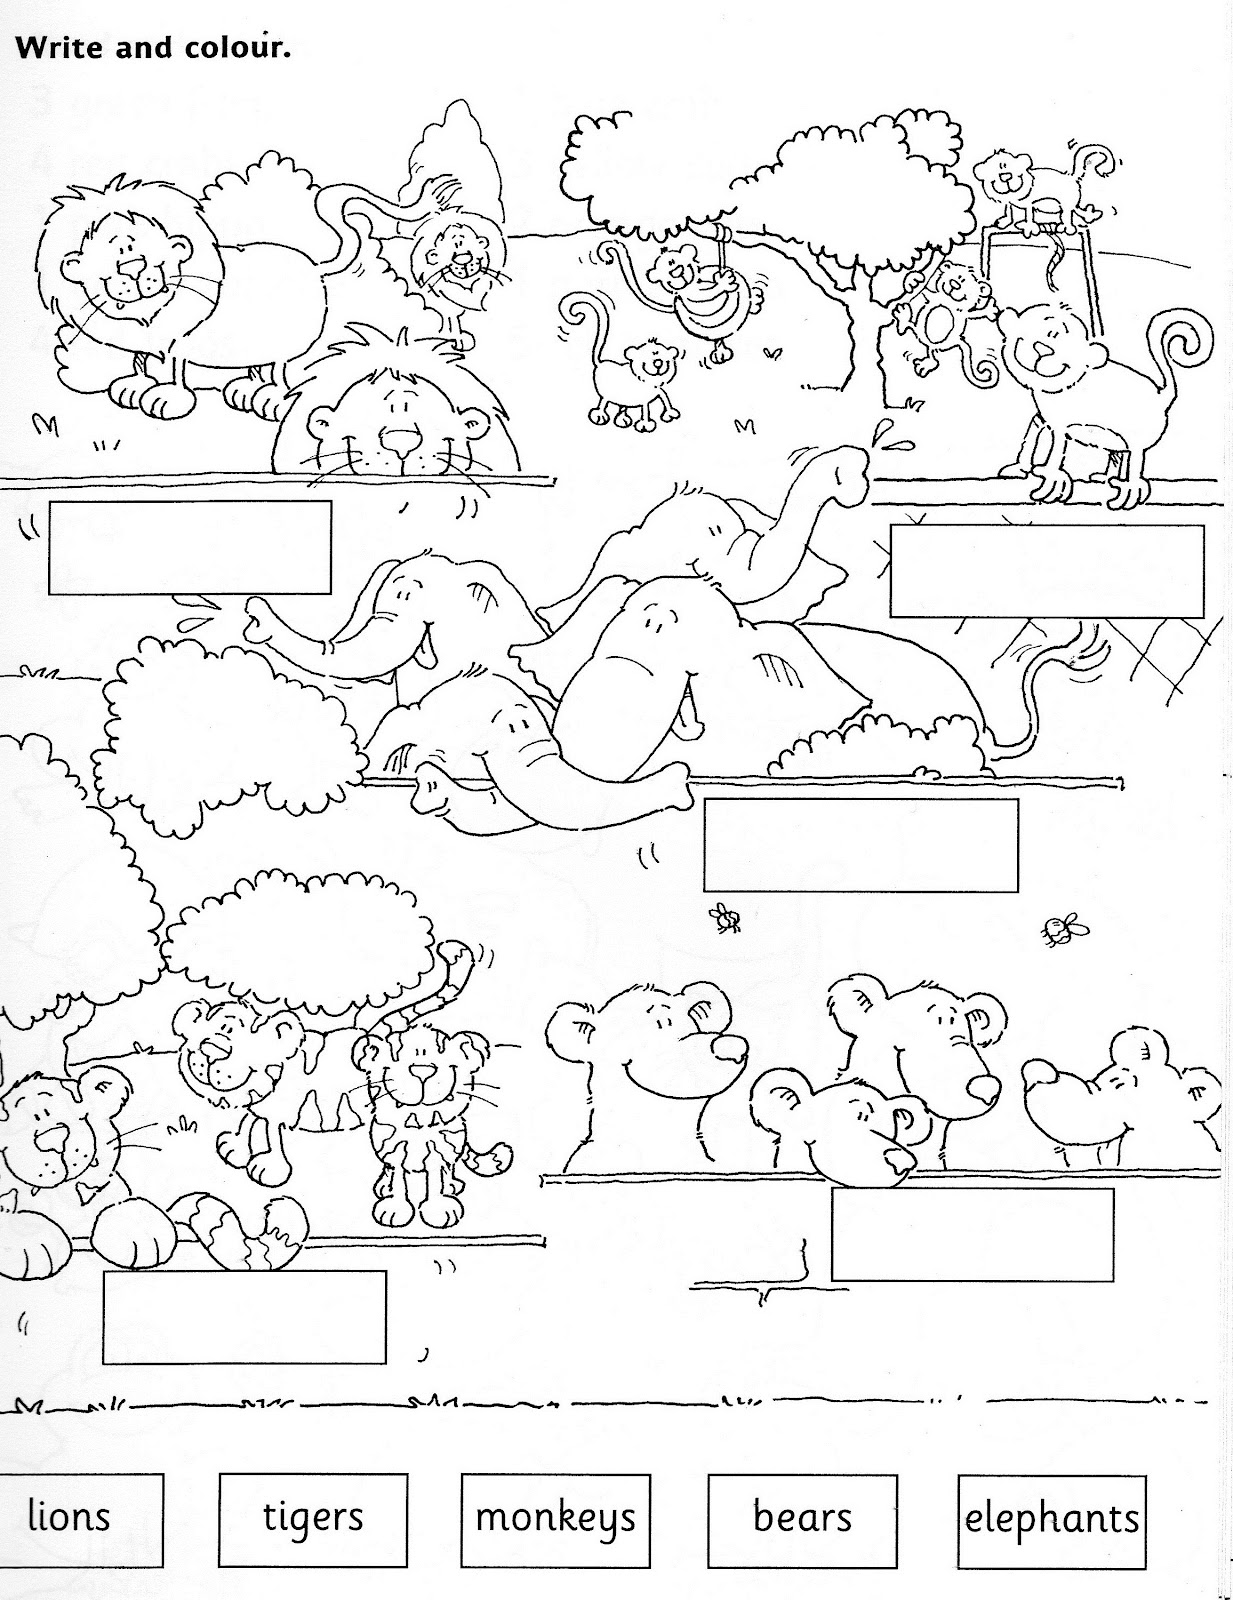 New 826 Zoo Animals Worksheets Printable